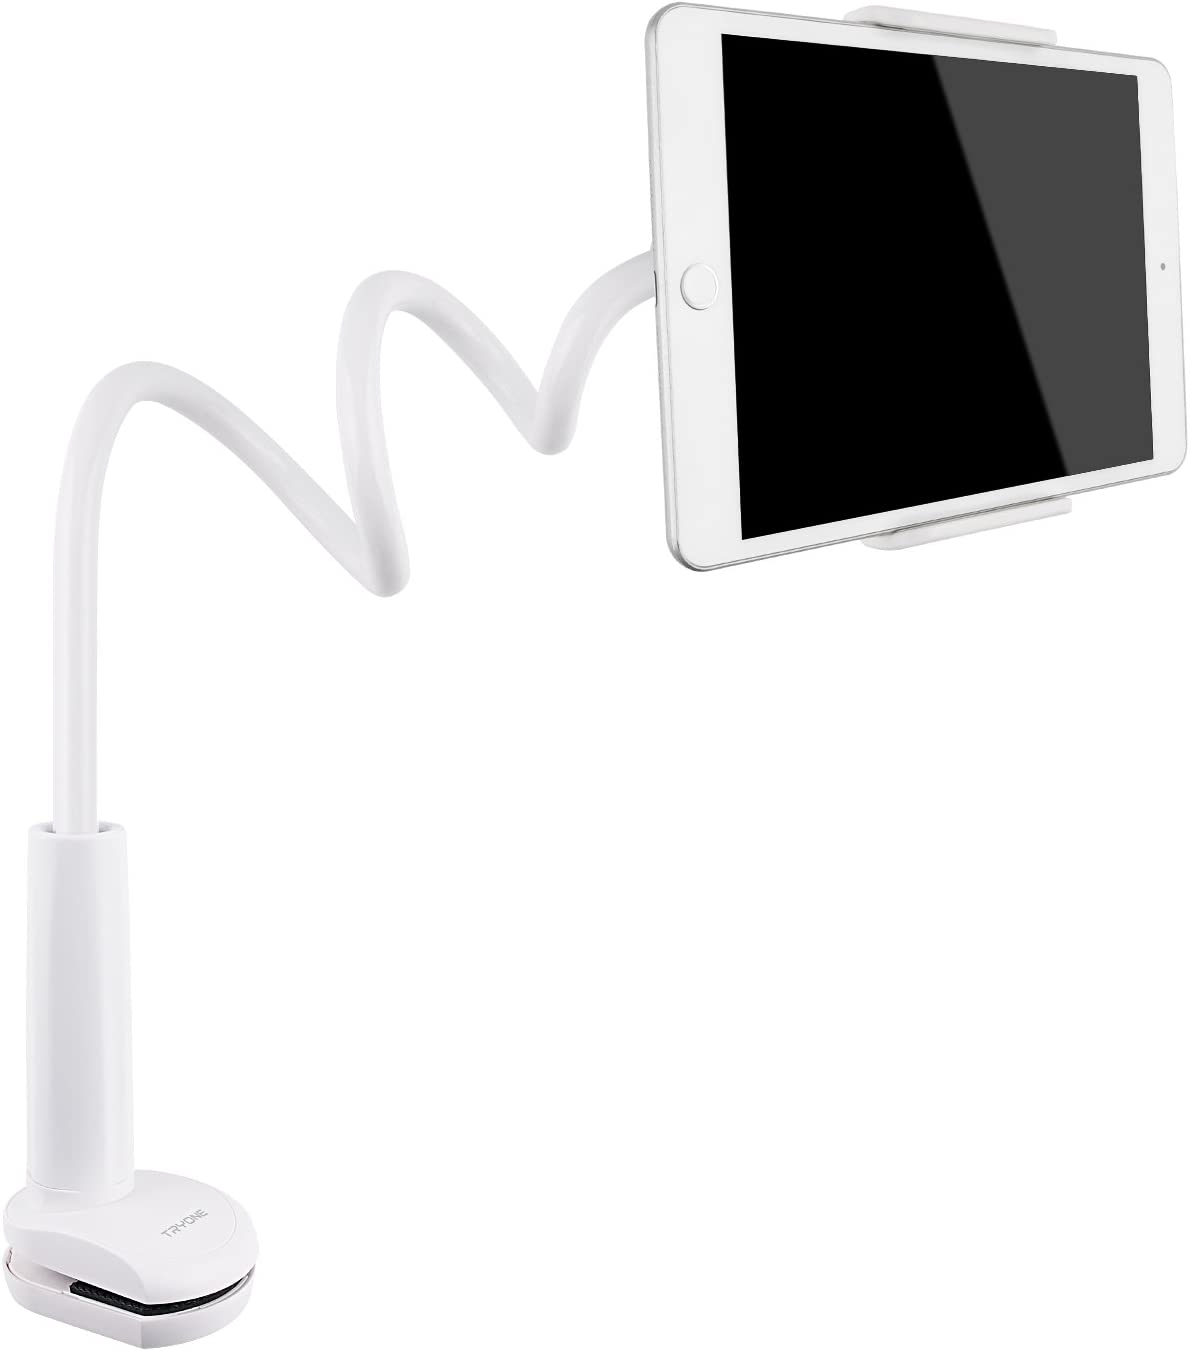 Tryone Gooseneck Tablet Stand, Tablet Mount Holder Compatible with iPad iPhone Series/Nintendo Switch/Samsung Galaxy Tabs/Amazon Kindle Fire HD and More, 30in Overall Length(White)